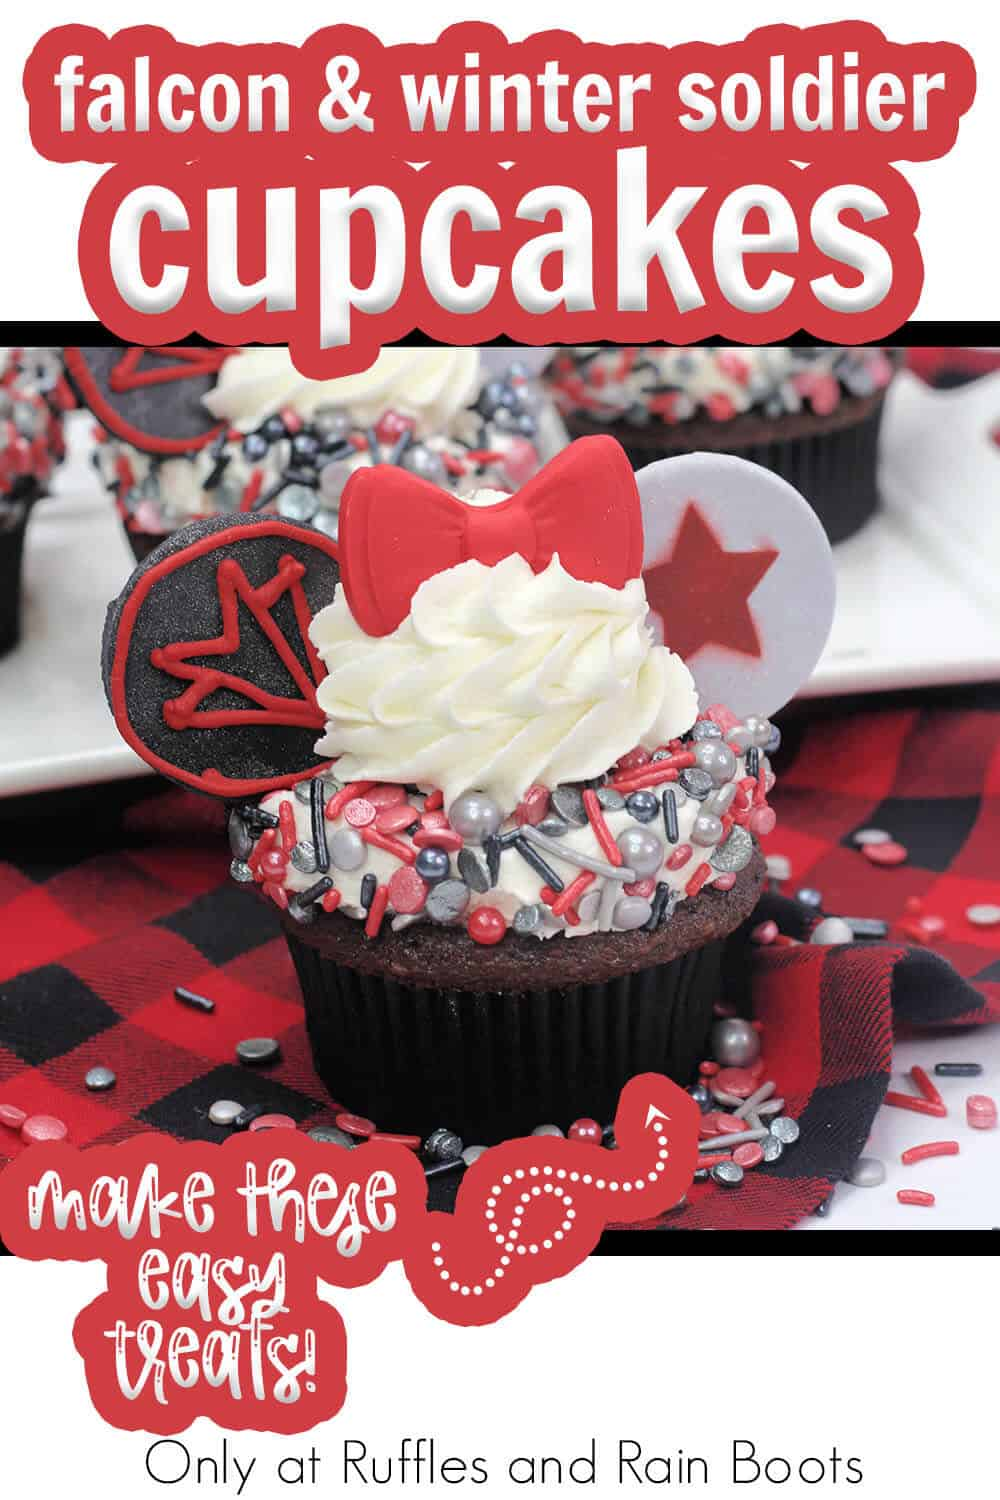 falcon and winter soldier cupcakes for a super hero party with text which reads falcon & winter soldier cupcakes make these easy treats